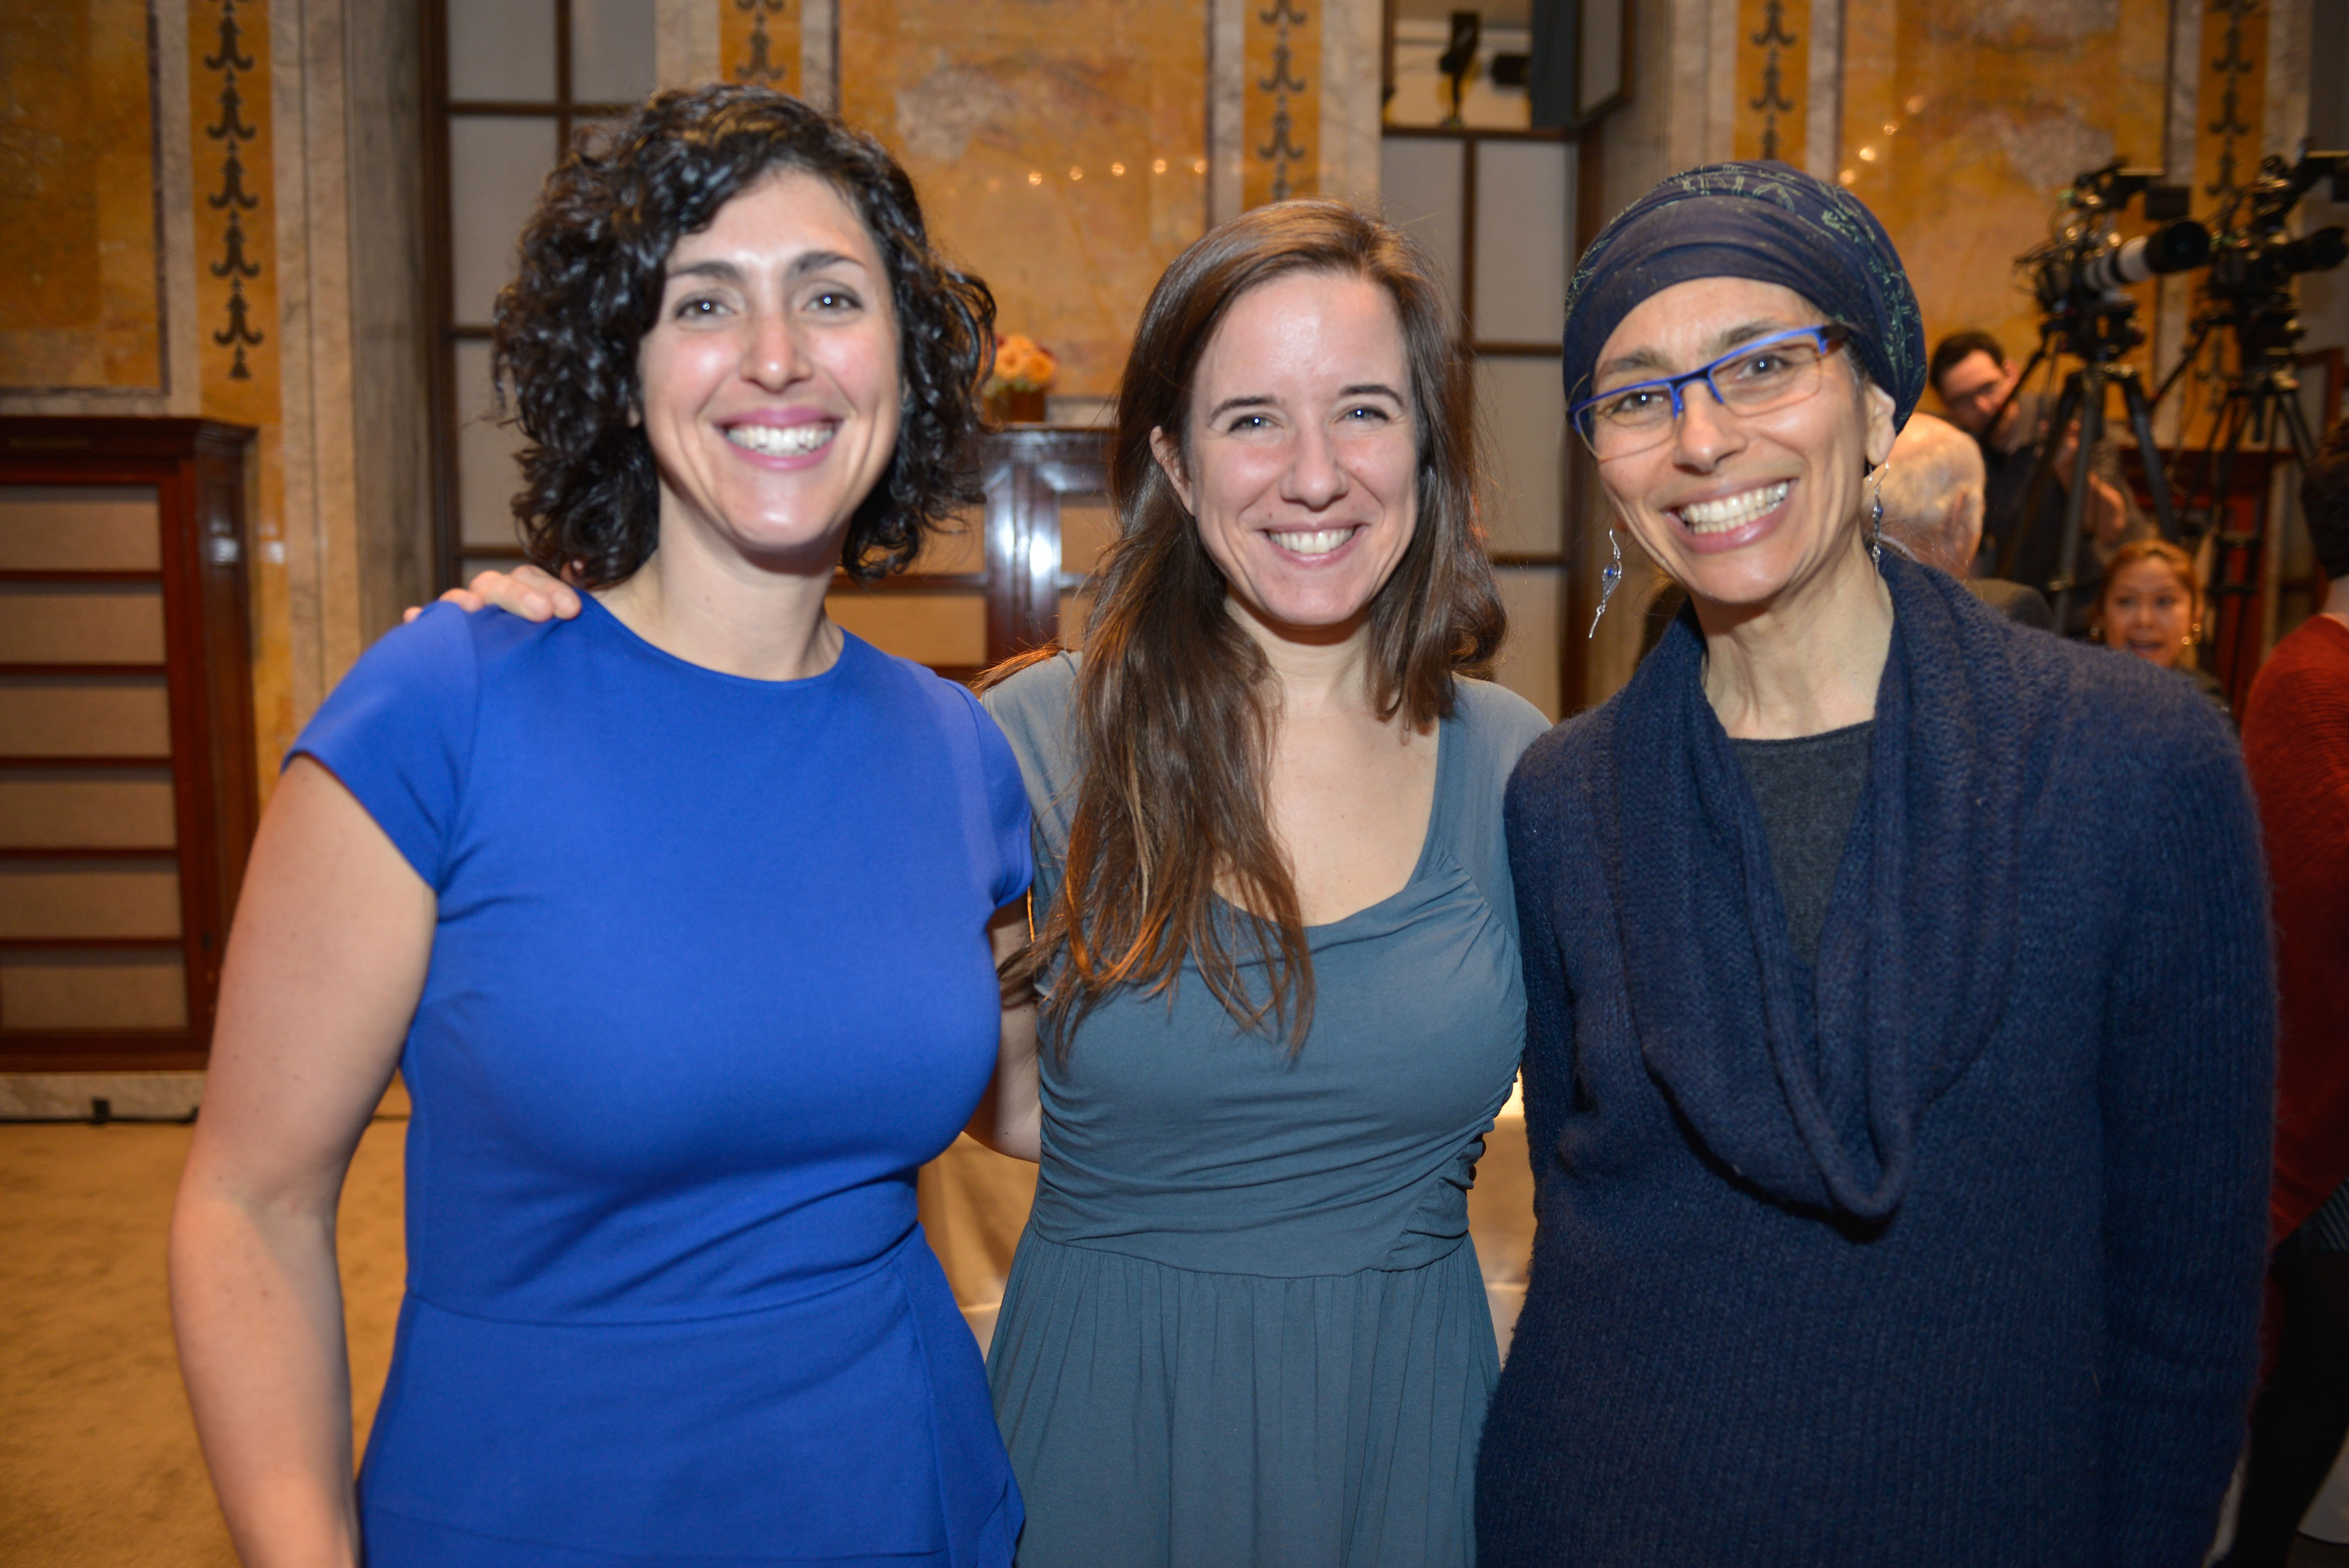 From left: 2018 Pomegranate Prize Recipient Rabbi Adina Allen, Rebecca Bloomfield, and Dr. Ronit Ziv-Kreger.